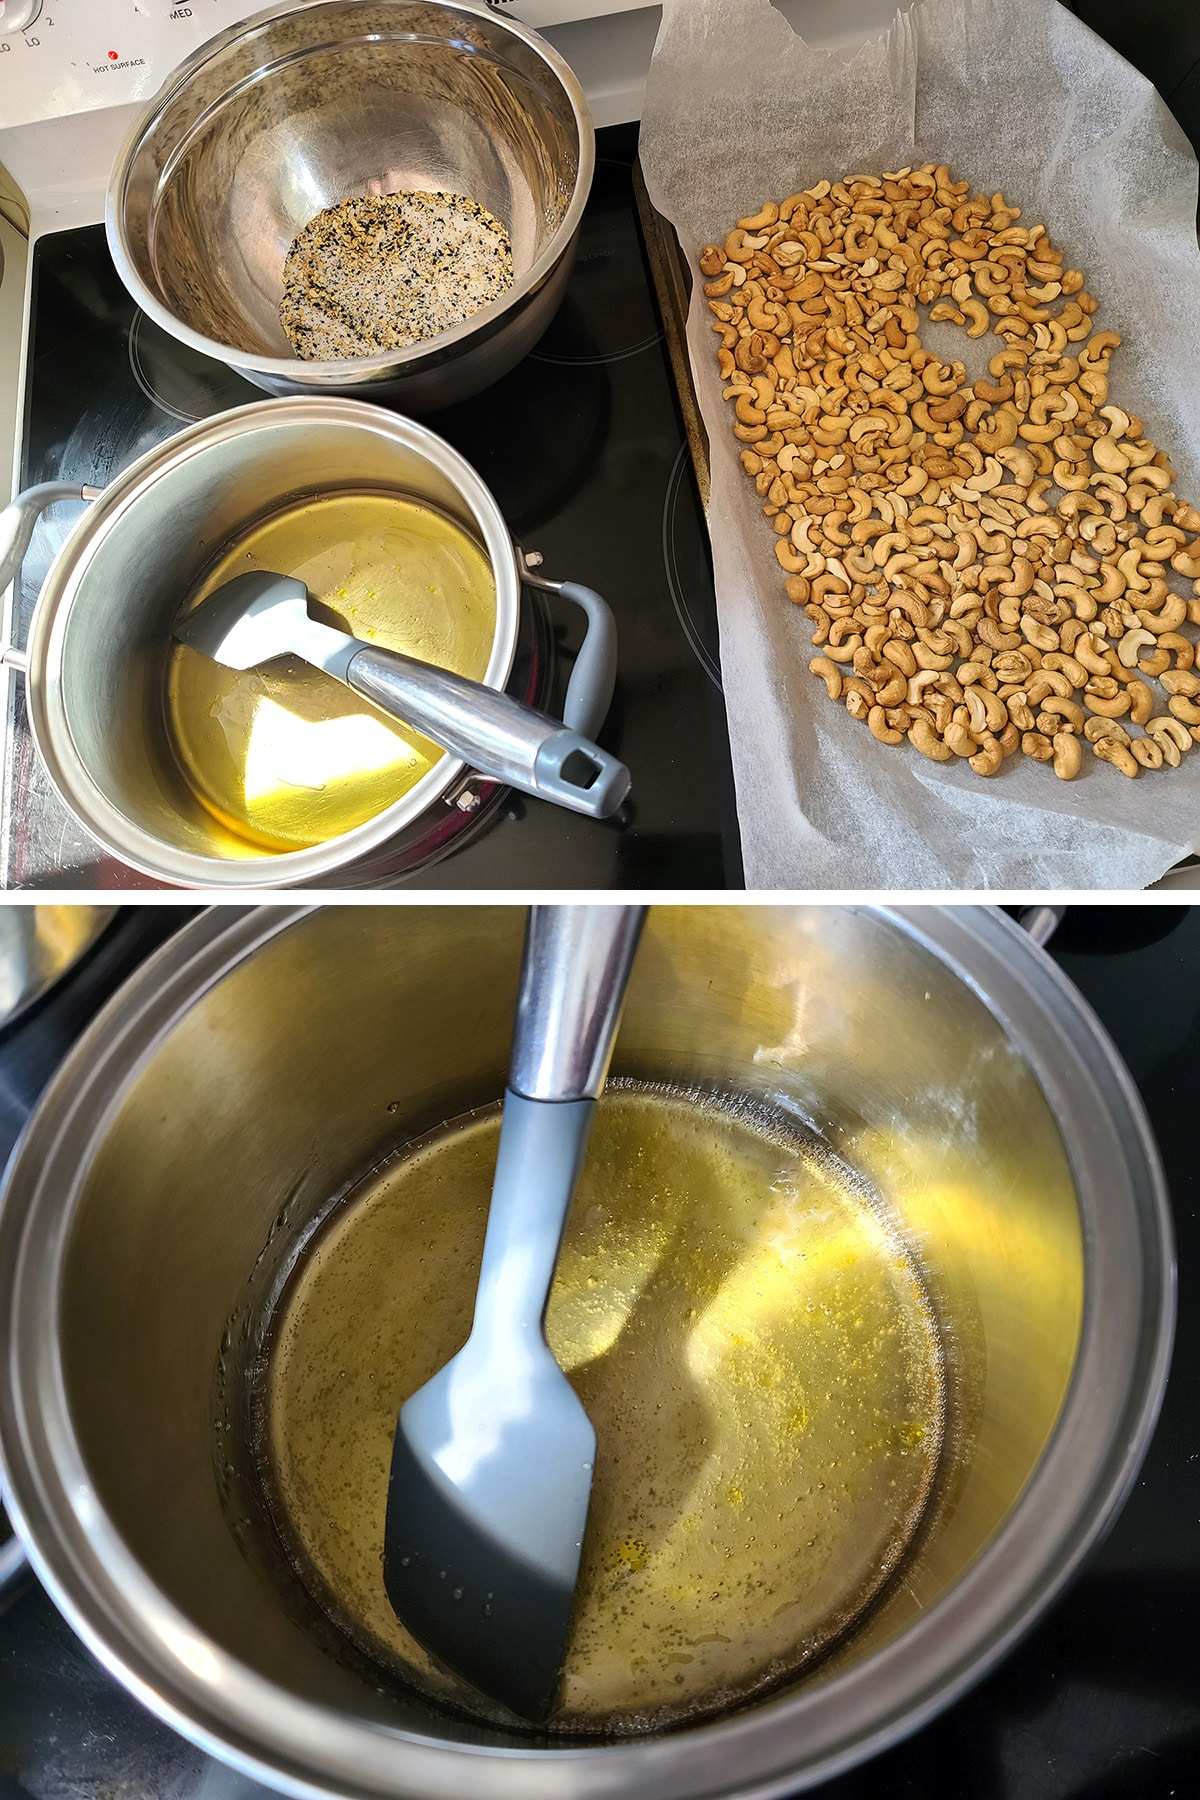 A two part image showing the pan of nuts, the bowl of seasoning mixture, and a pot with honey and oil, on a stovetop, as well as a close up view of the honey simmering.